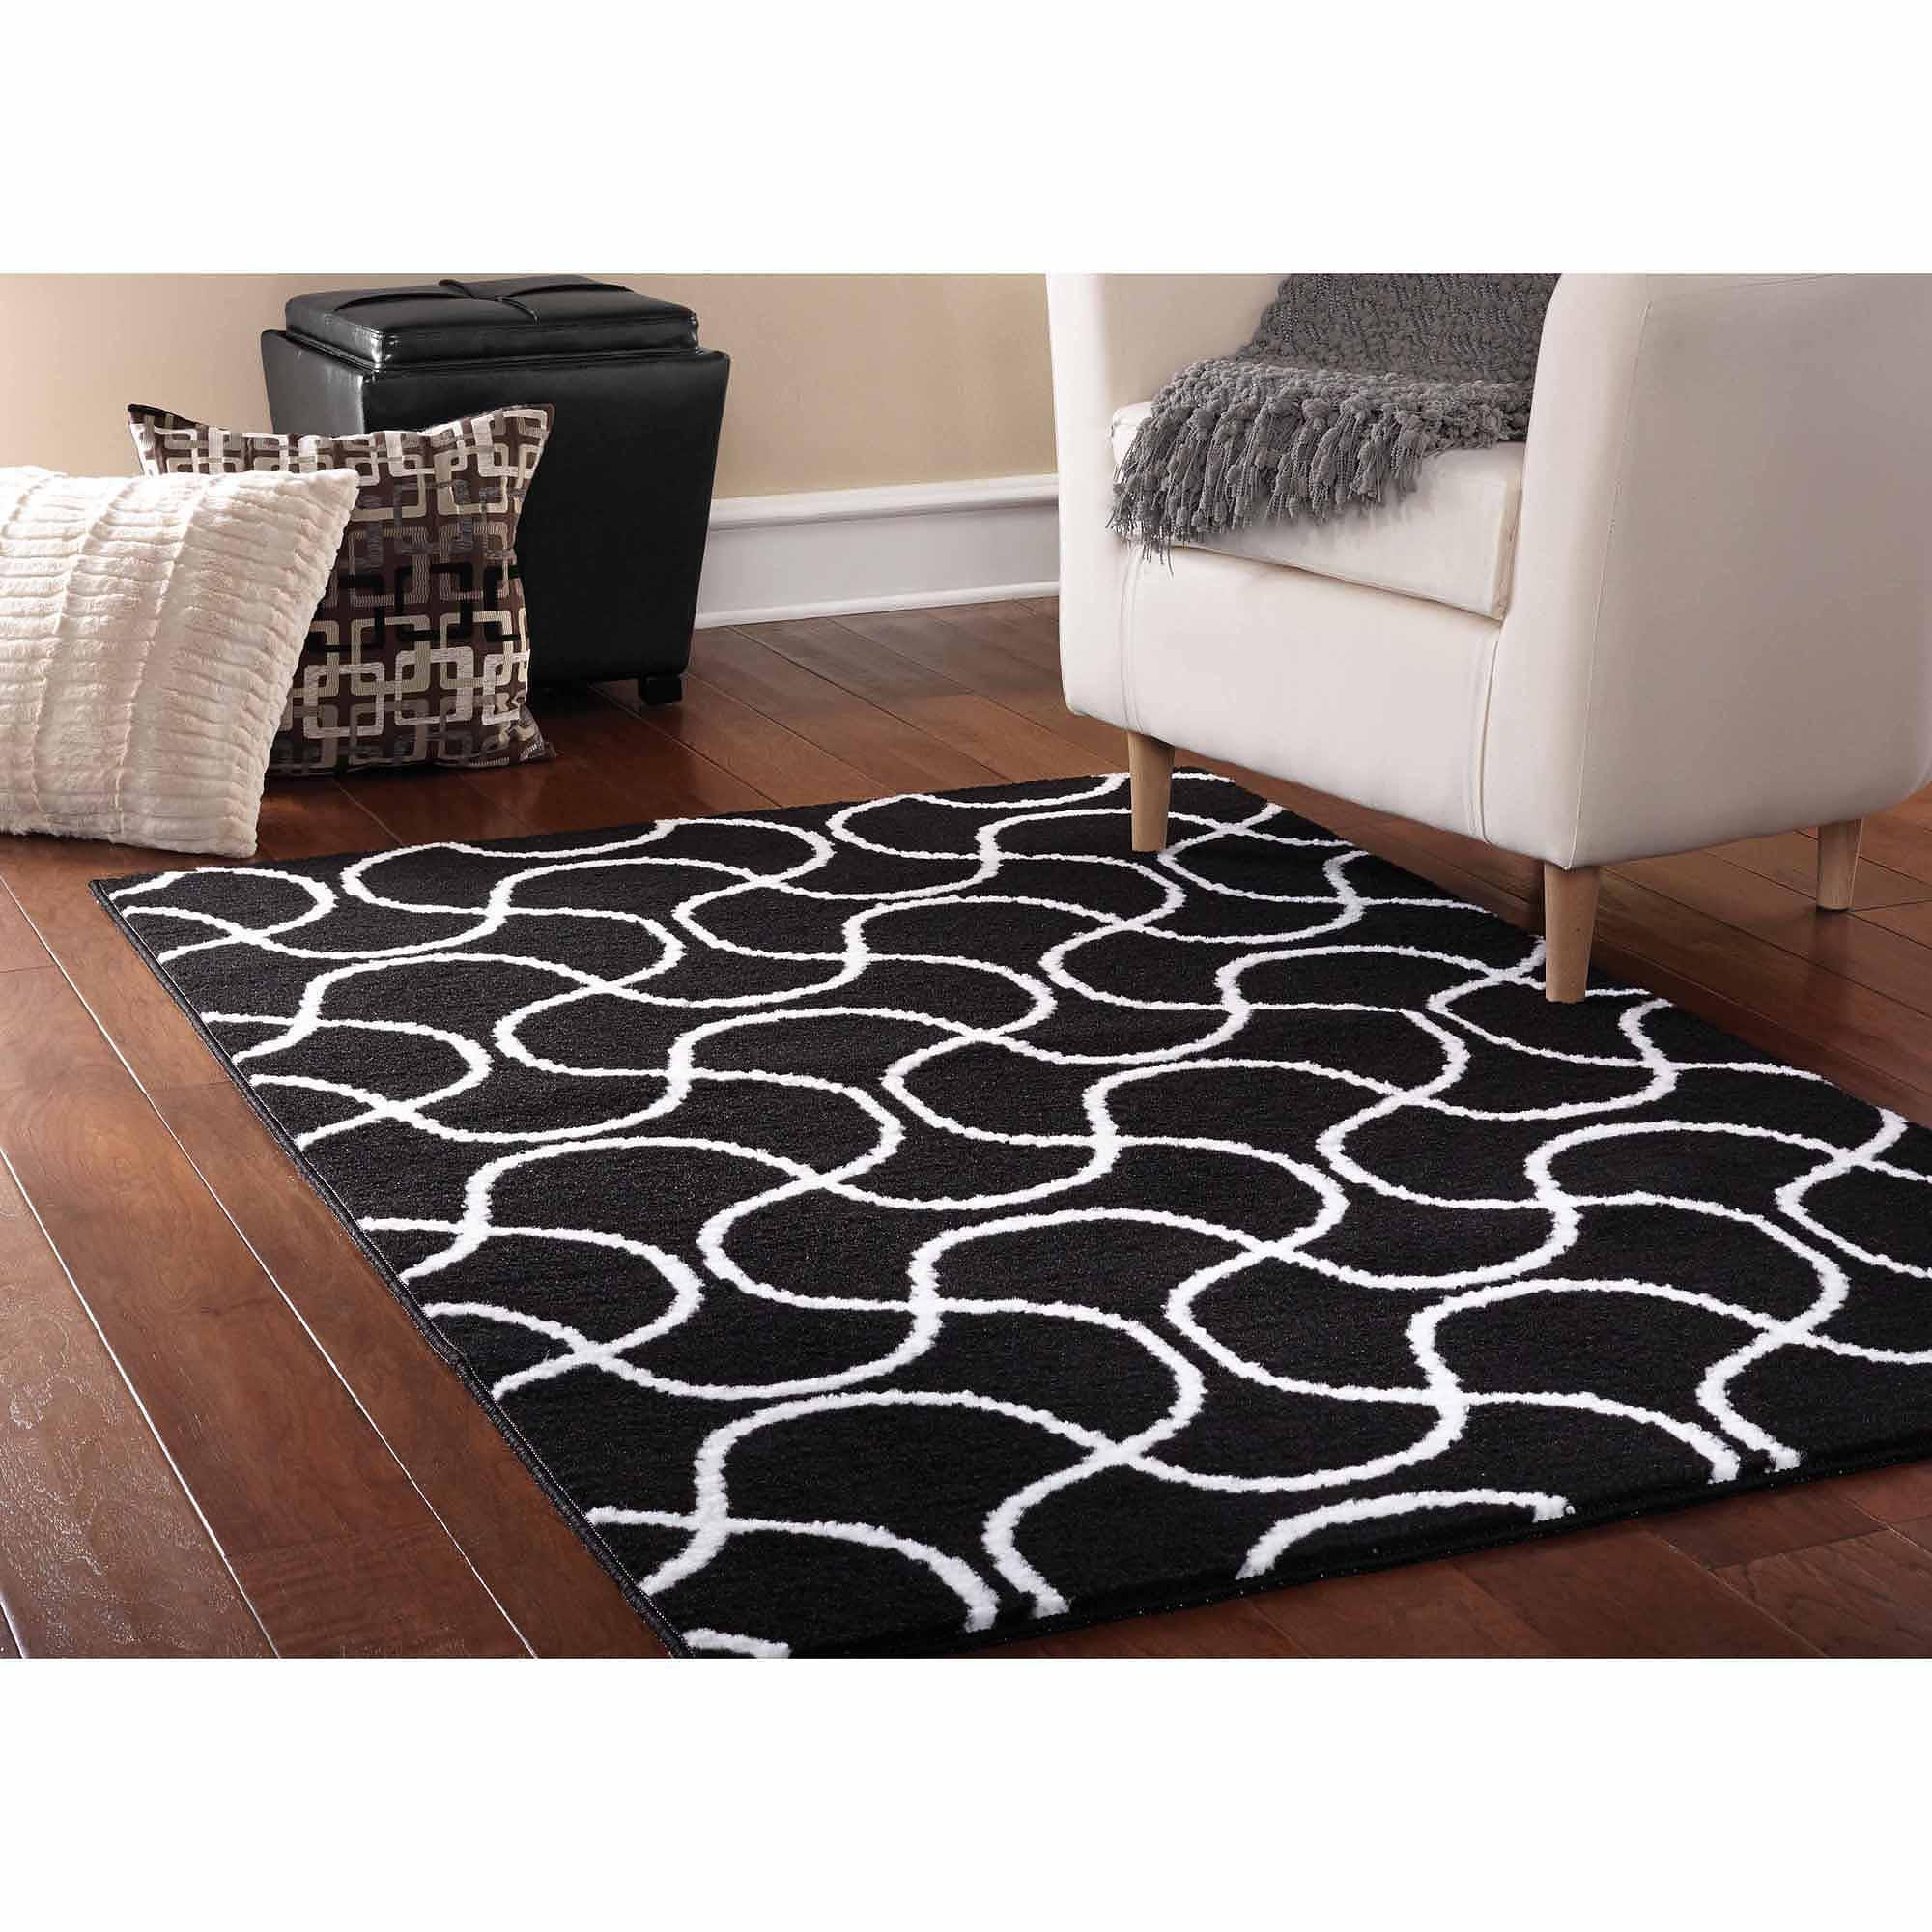 Black and white bedding walmart - Black And White Bedding Walmart 47